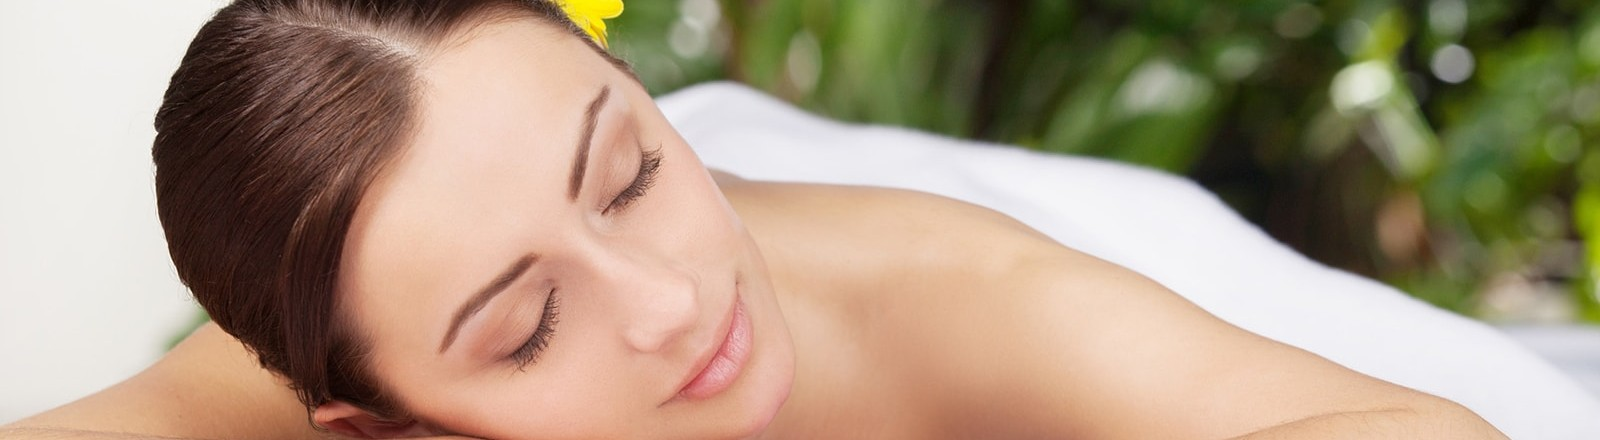 Massage Service in Gurgaon by Female to Male at Best Price